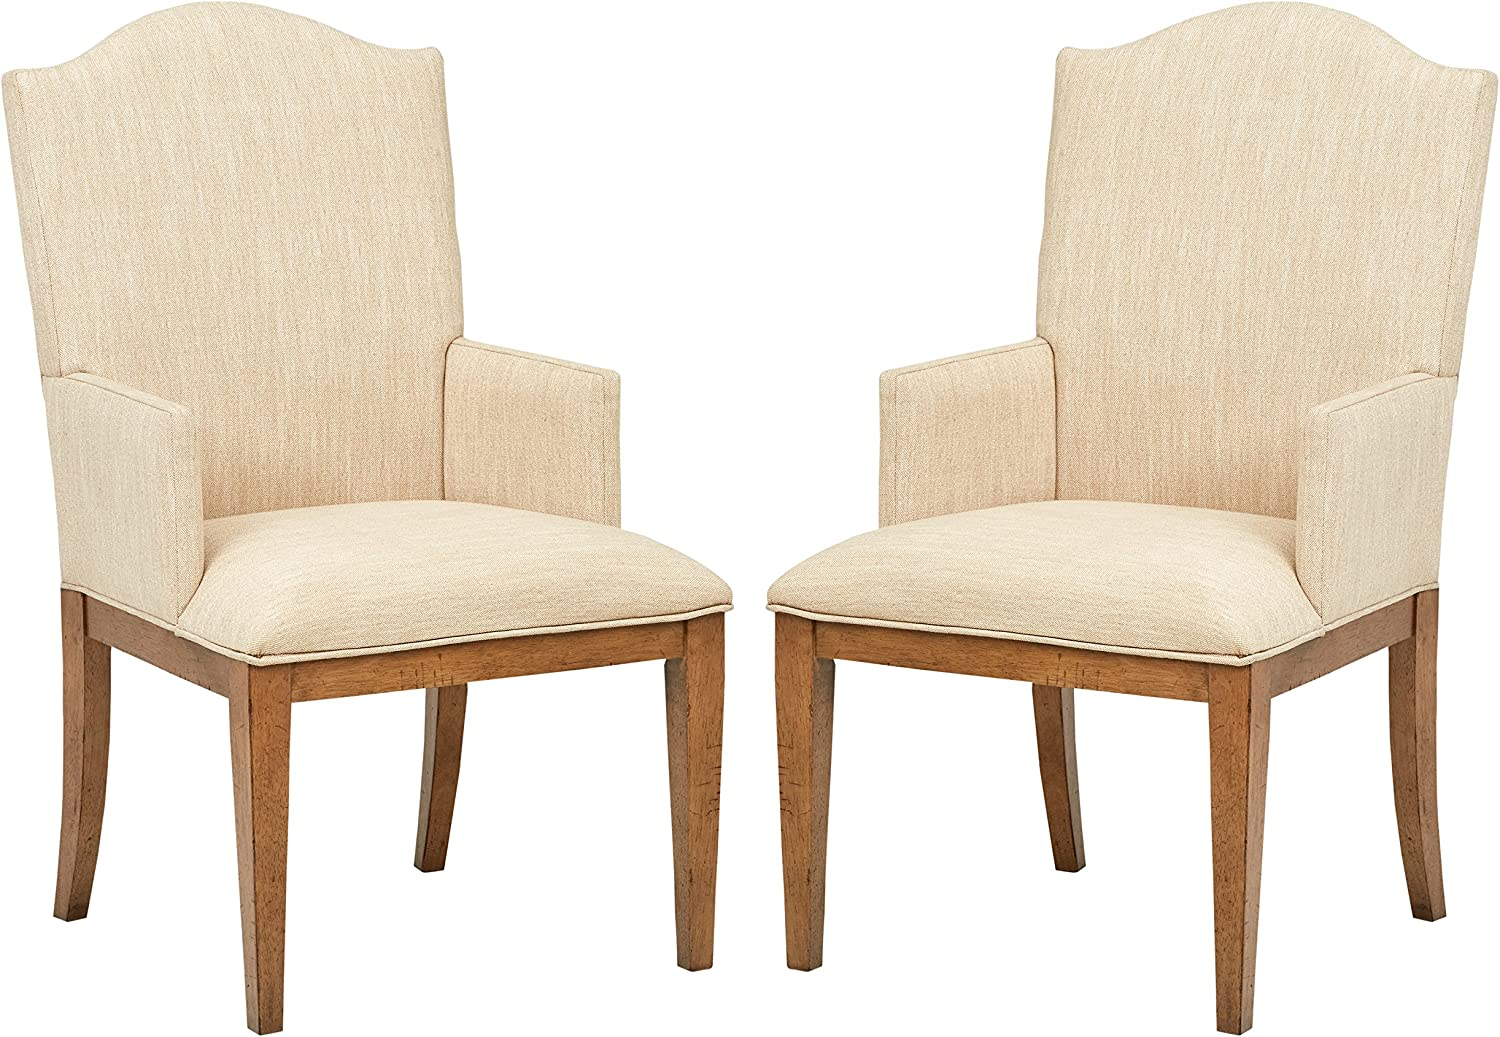 Stone & Beam Parson Farmhouse Dining Room Kitchen Chairs, 40 Inch Height,  Set of 2, Beige